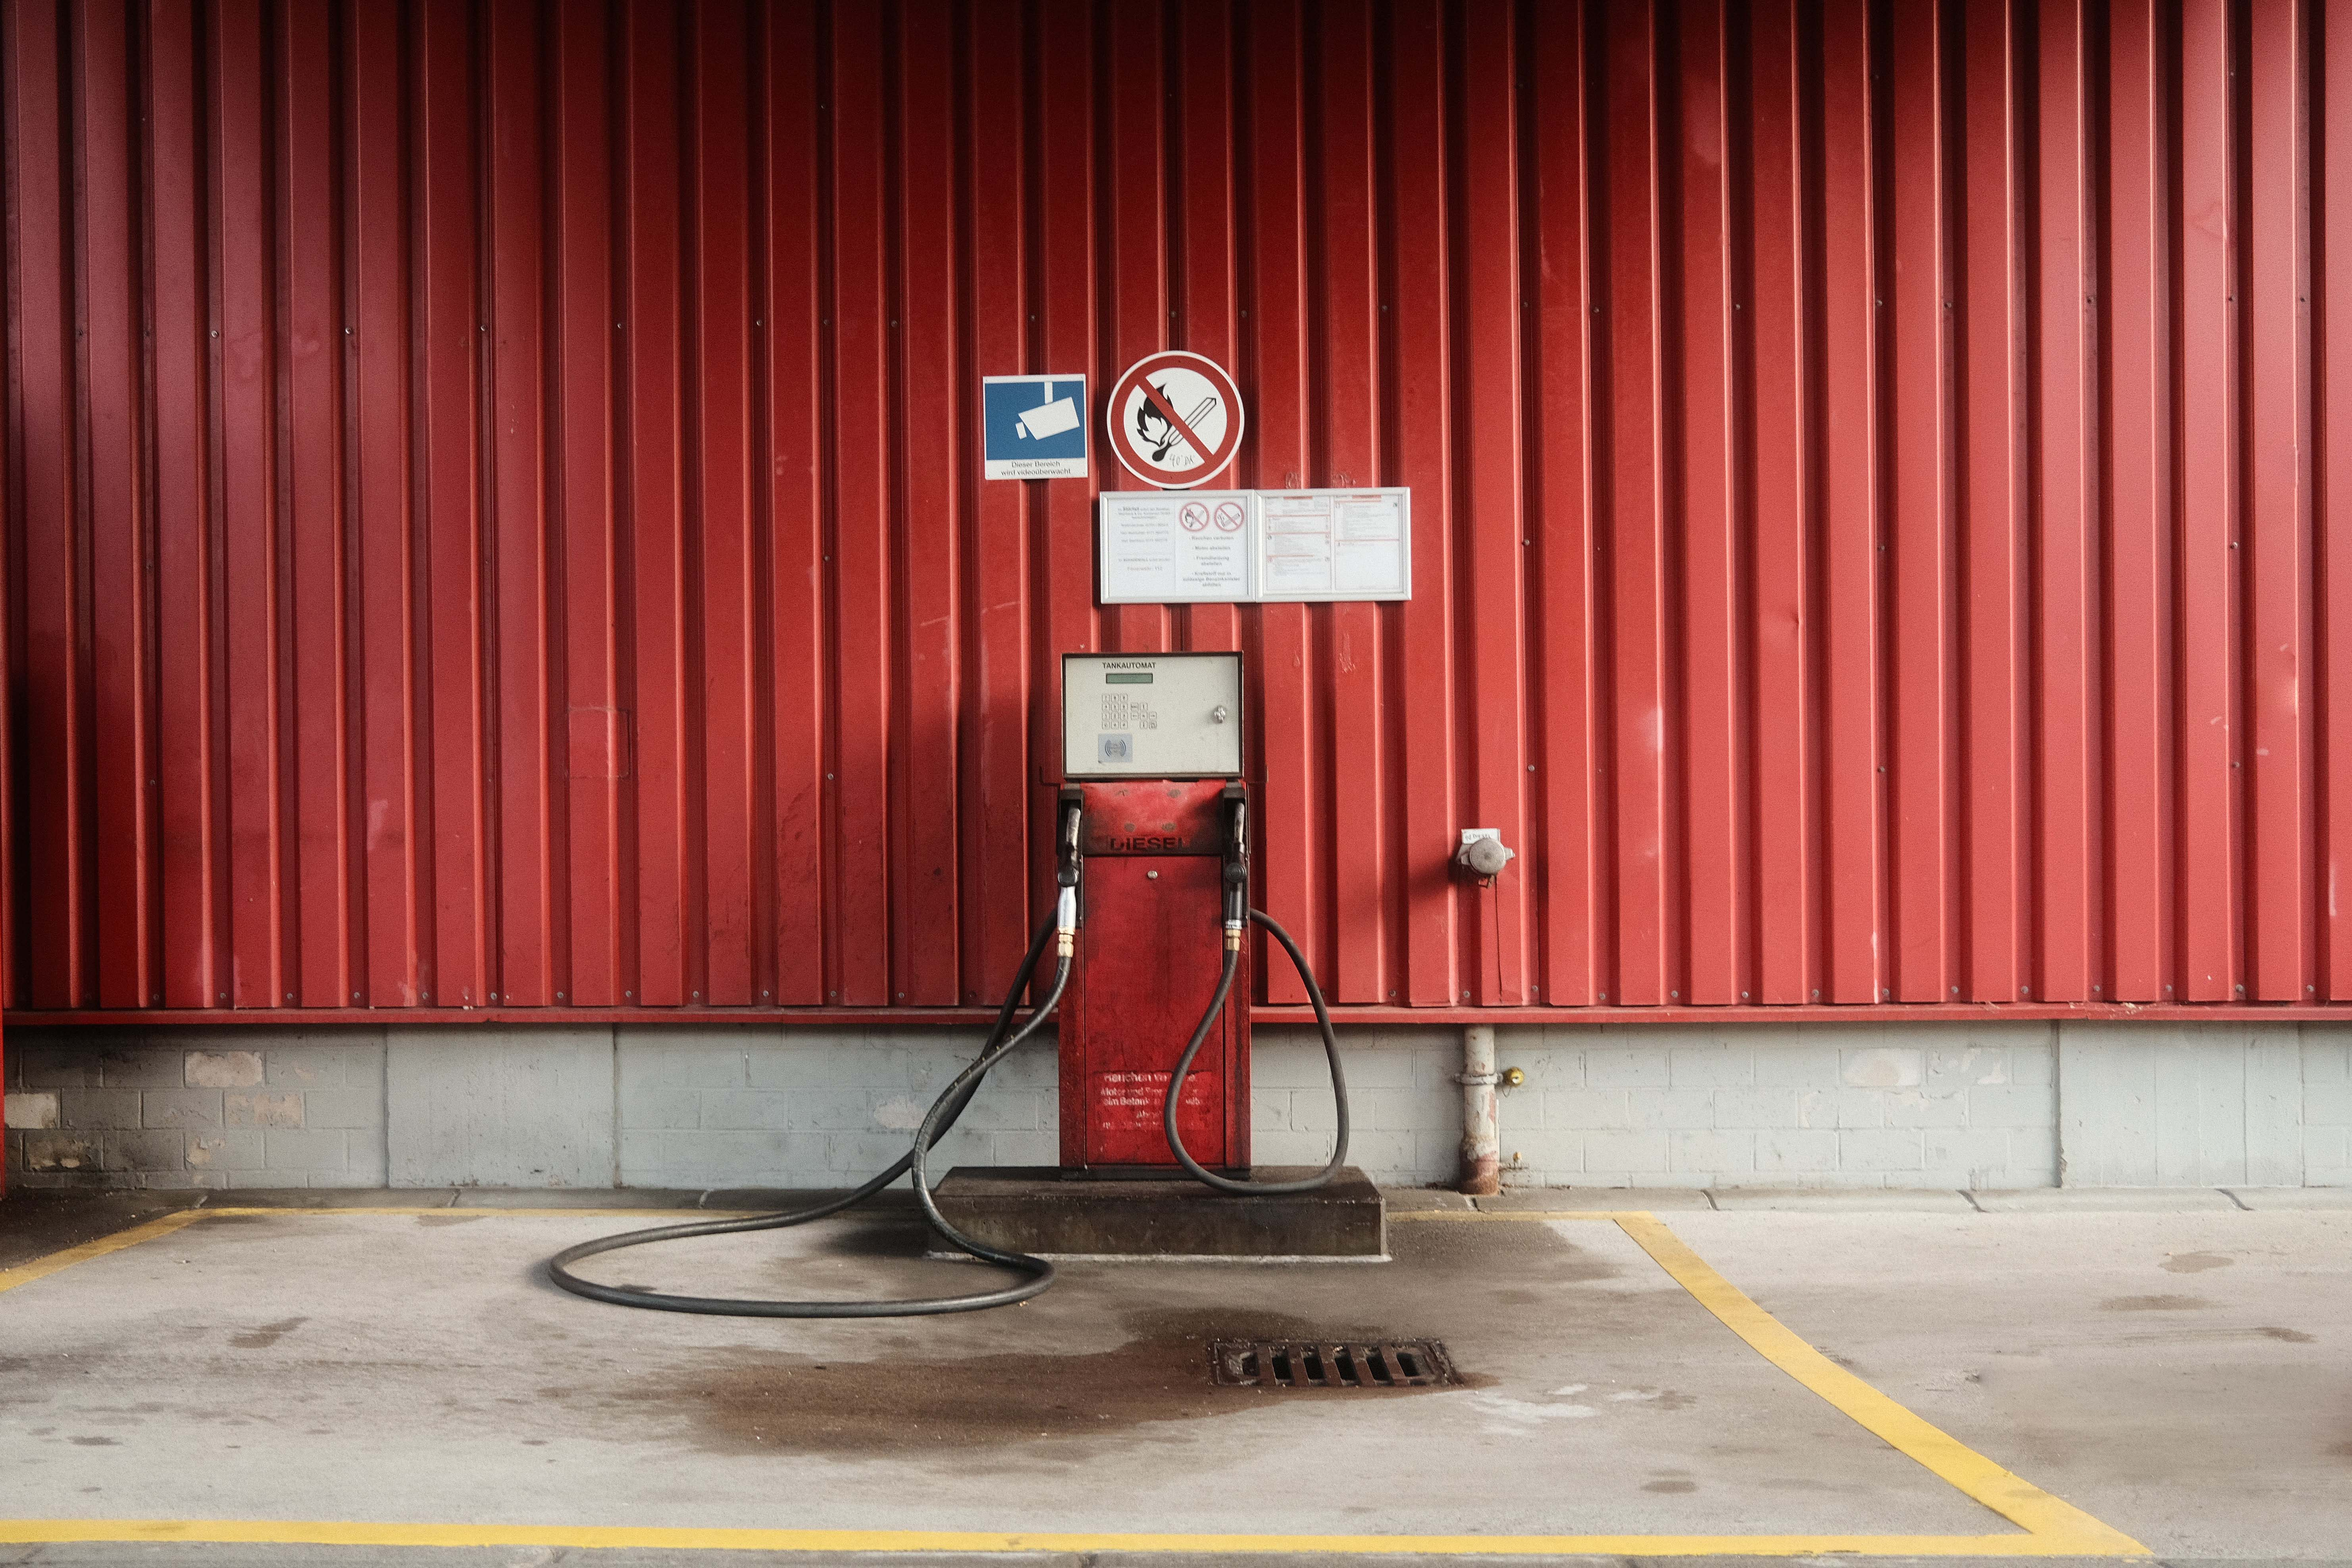 An old fashioned gas pump in front of a red wall in a dirty car park.